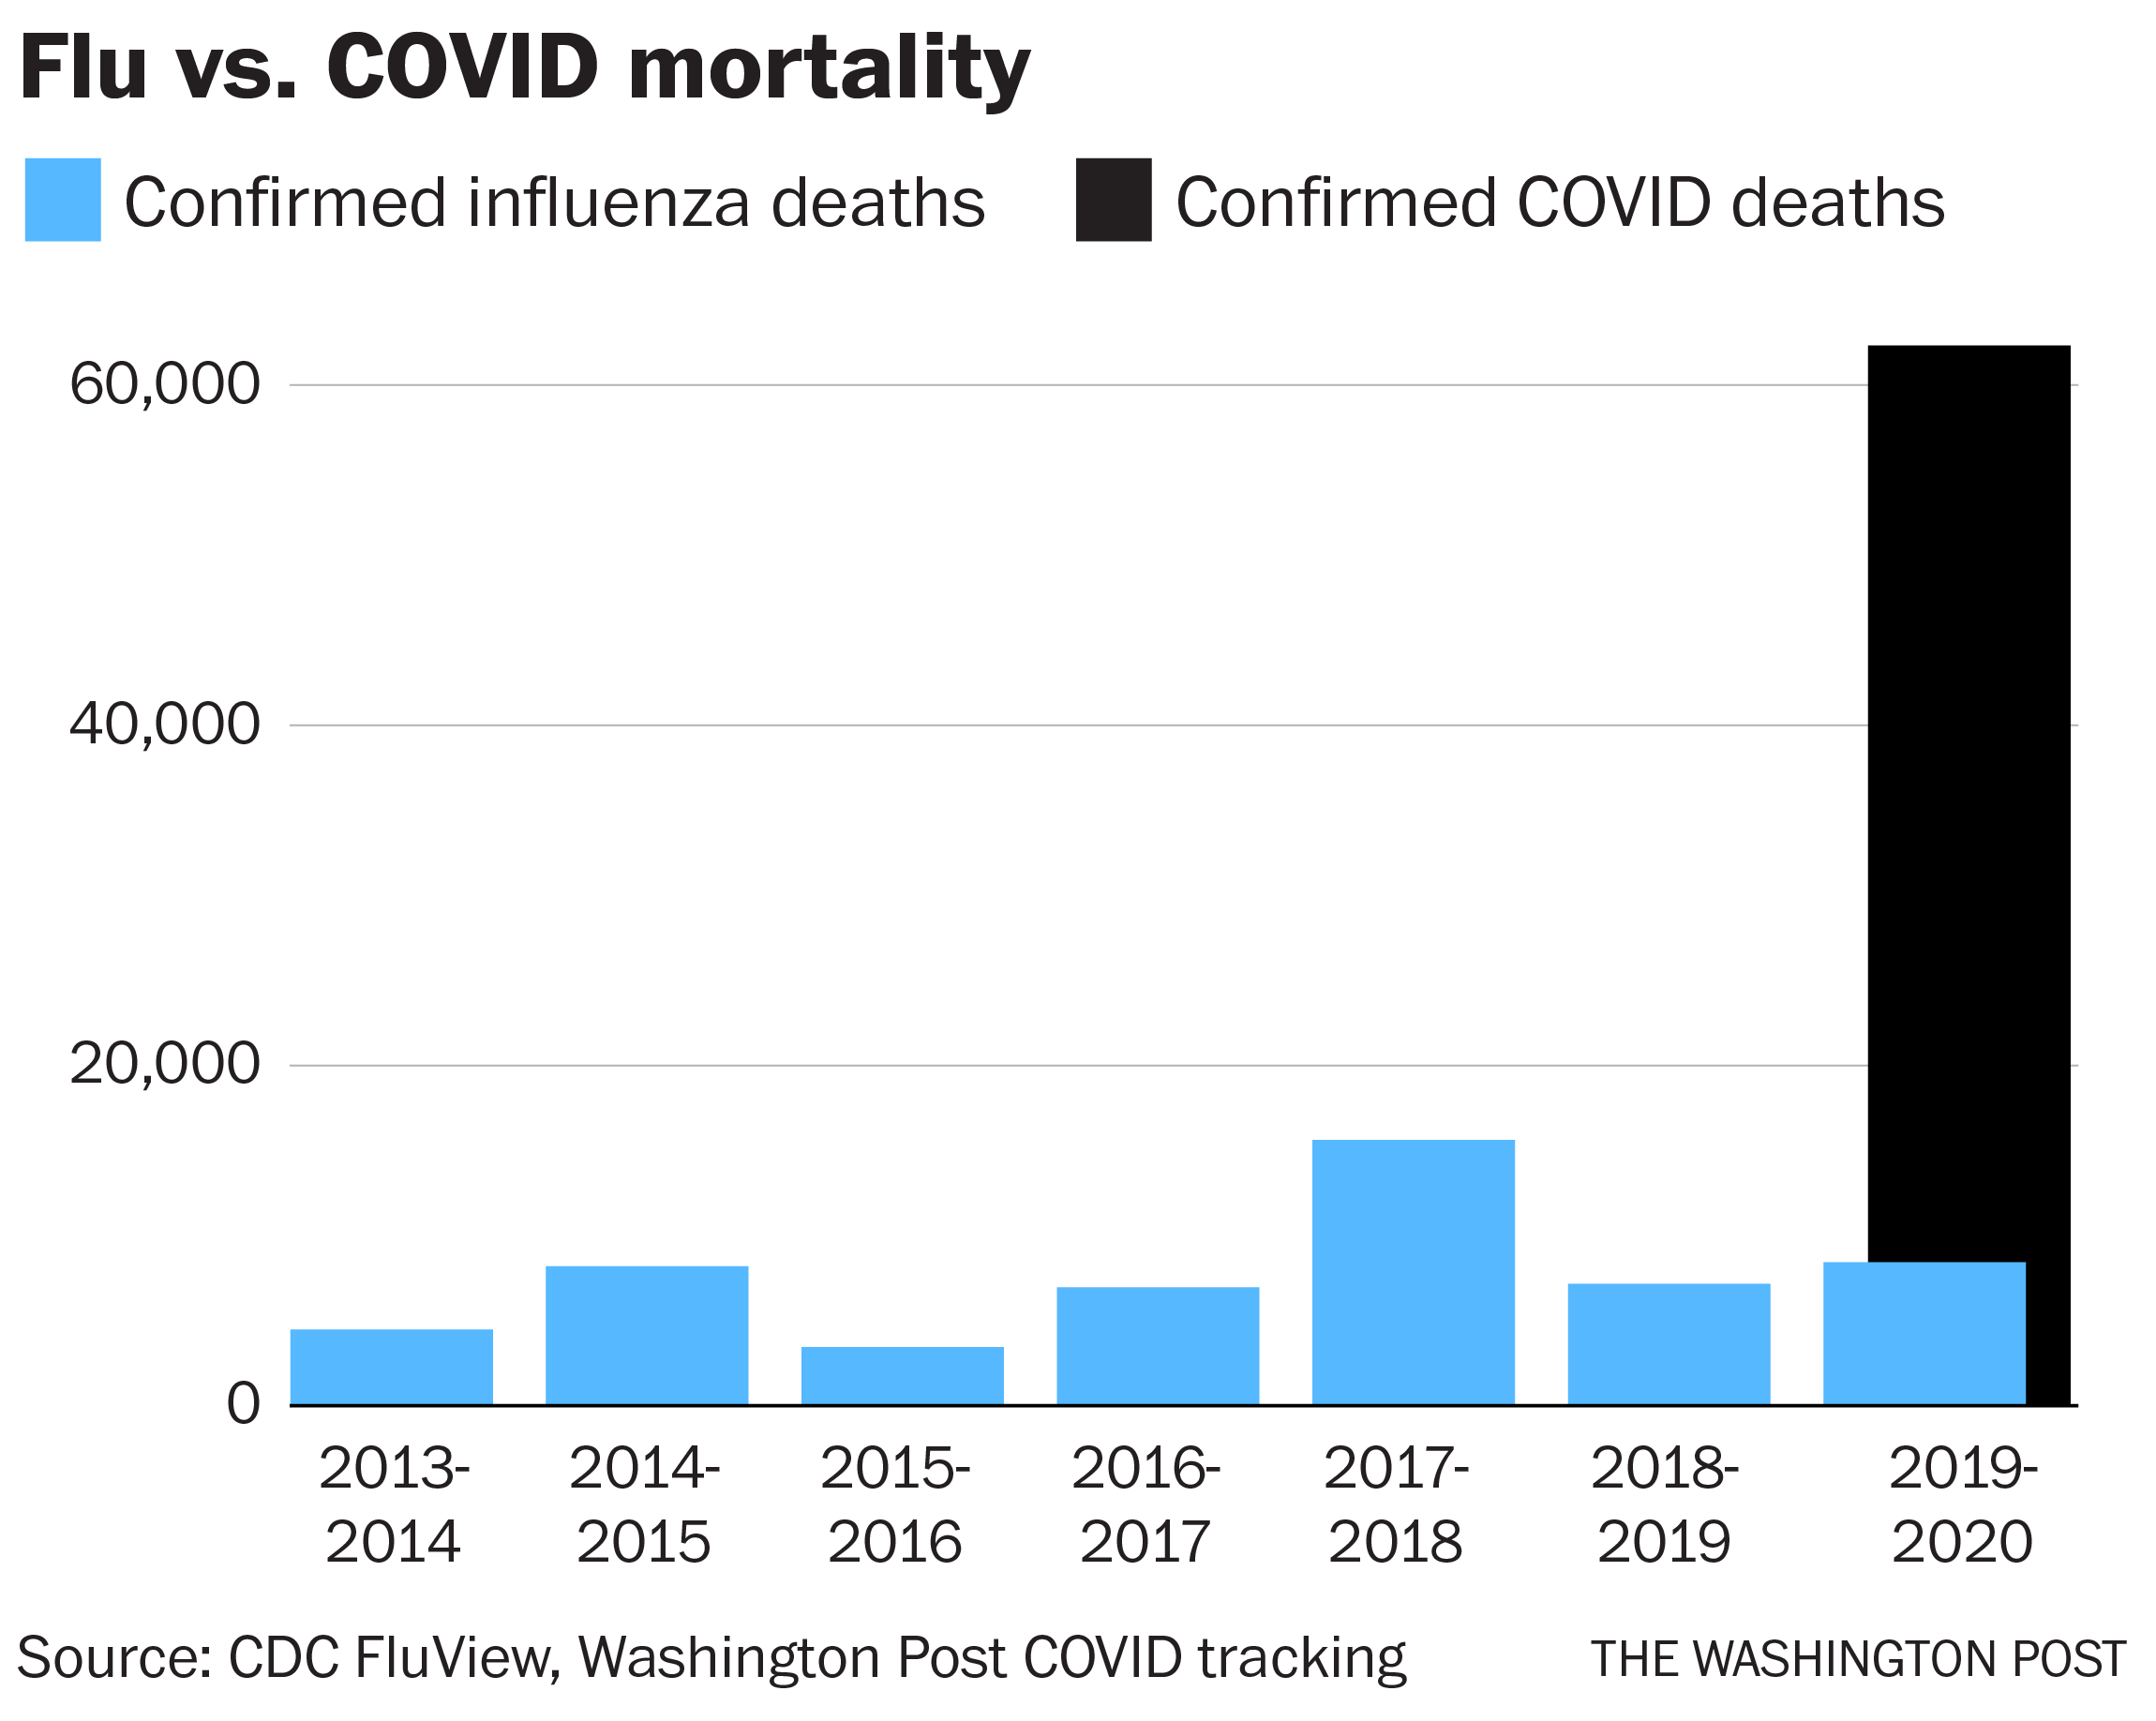 How To Compare Coronavirus Deaths To Flu Deaths More Accurately The Washington Post